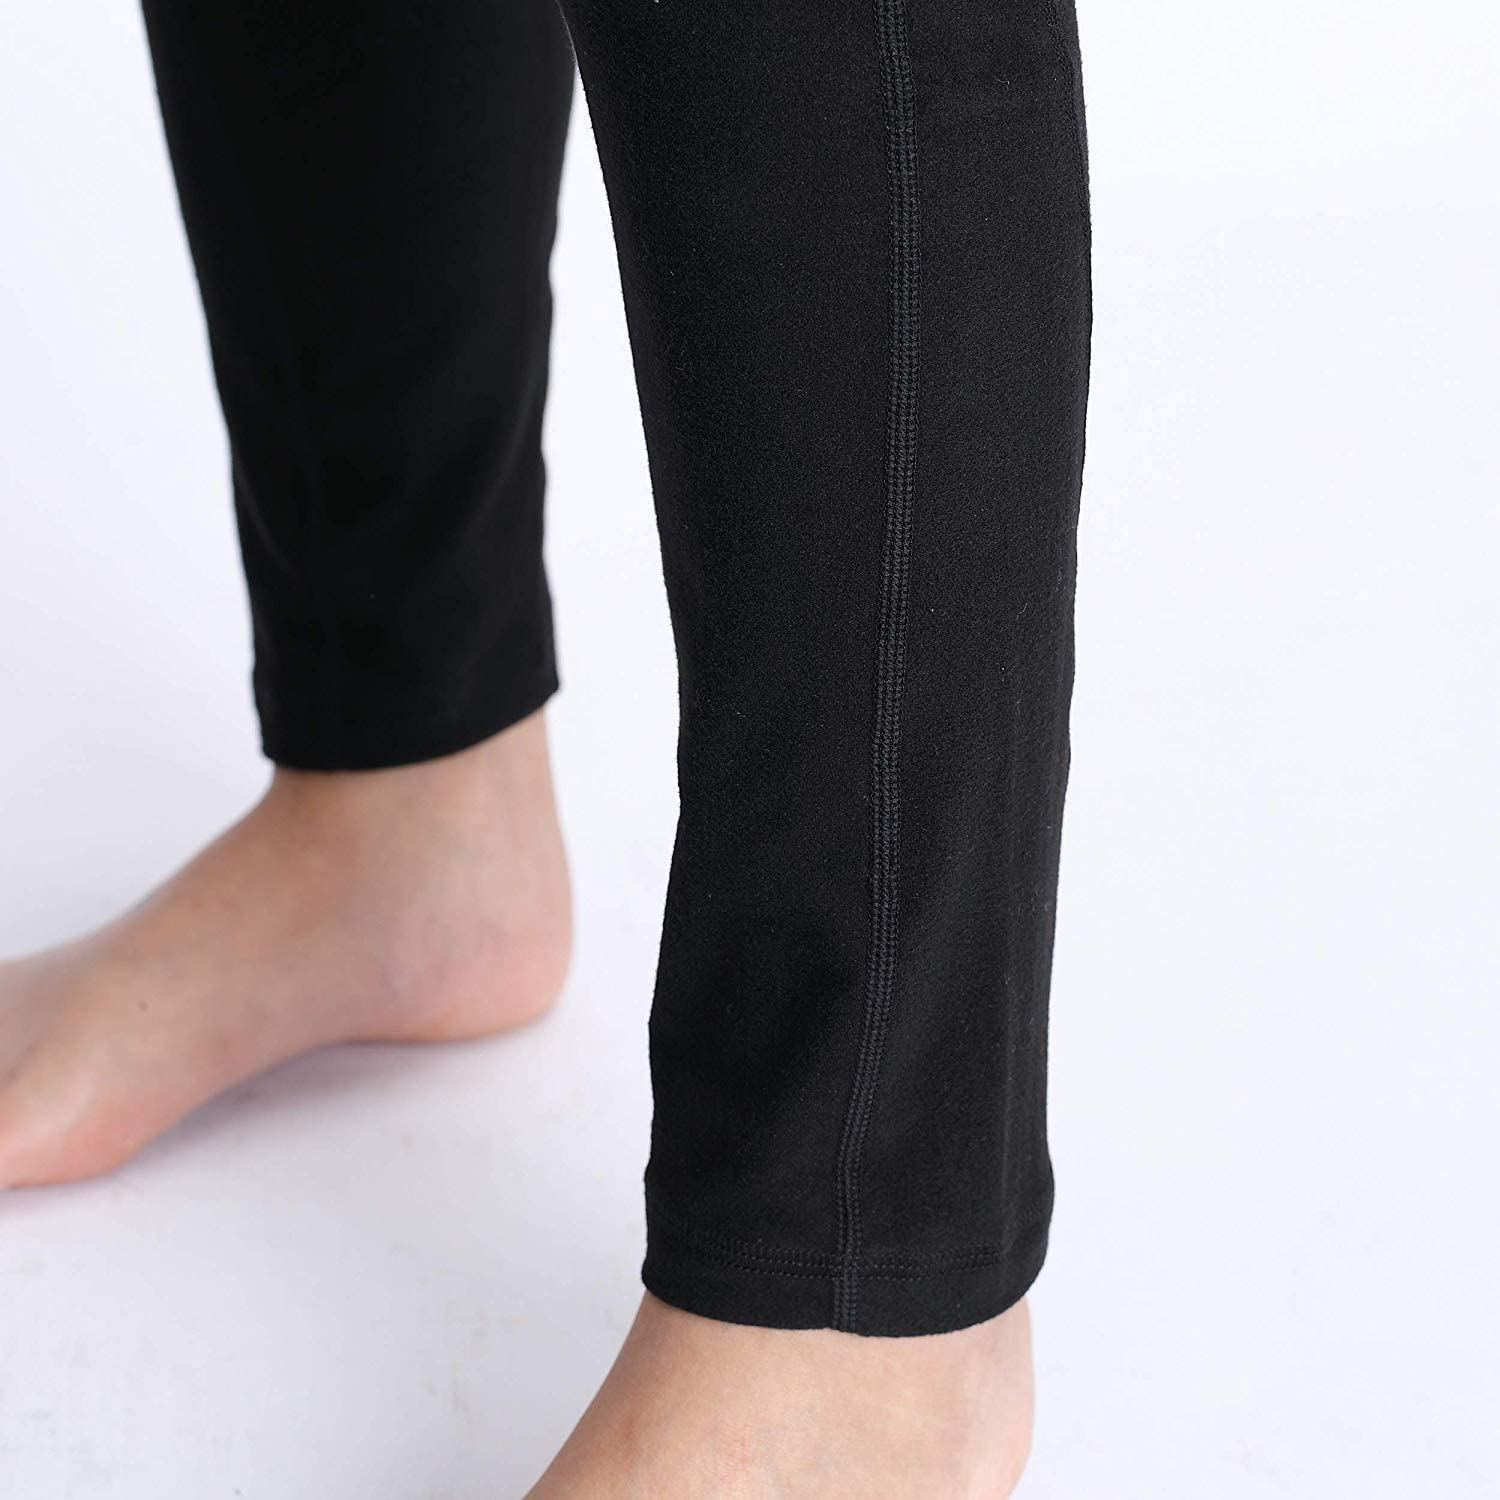 Foucome Maternity Pants for Women,Comfy Stretch Pull-on Work Out Leggings with Pockets